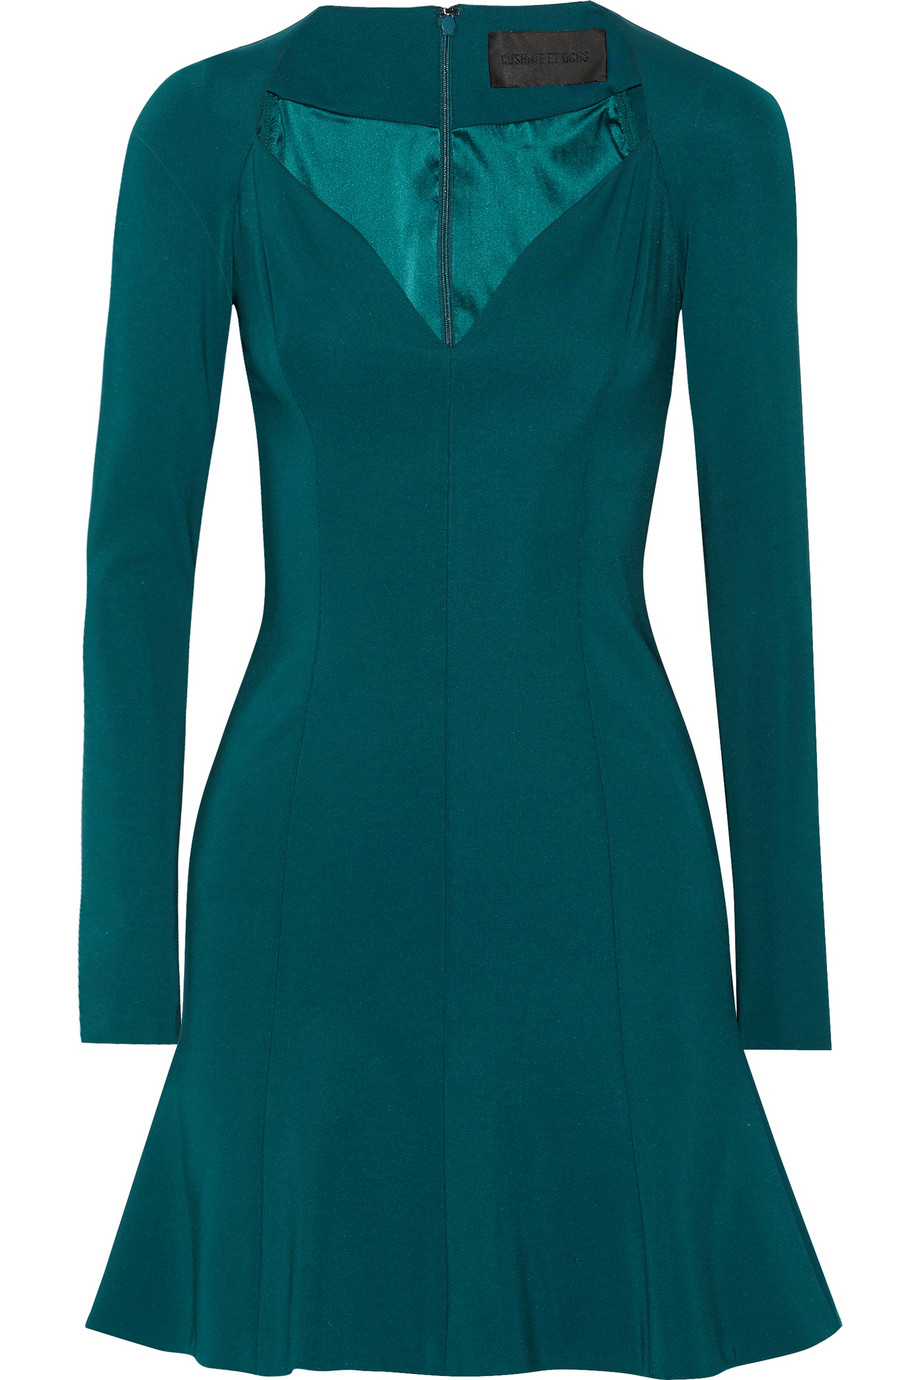 ... Cushnie et Ochs Power Stretch stretch-jersey dress $1395